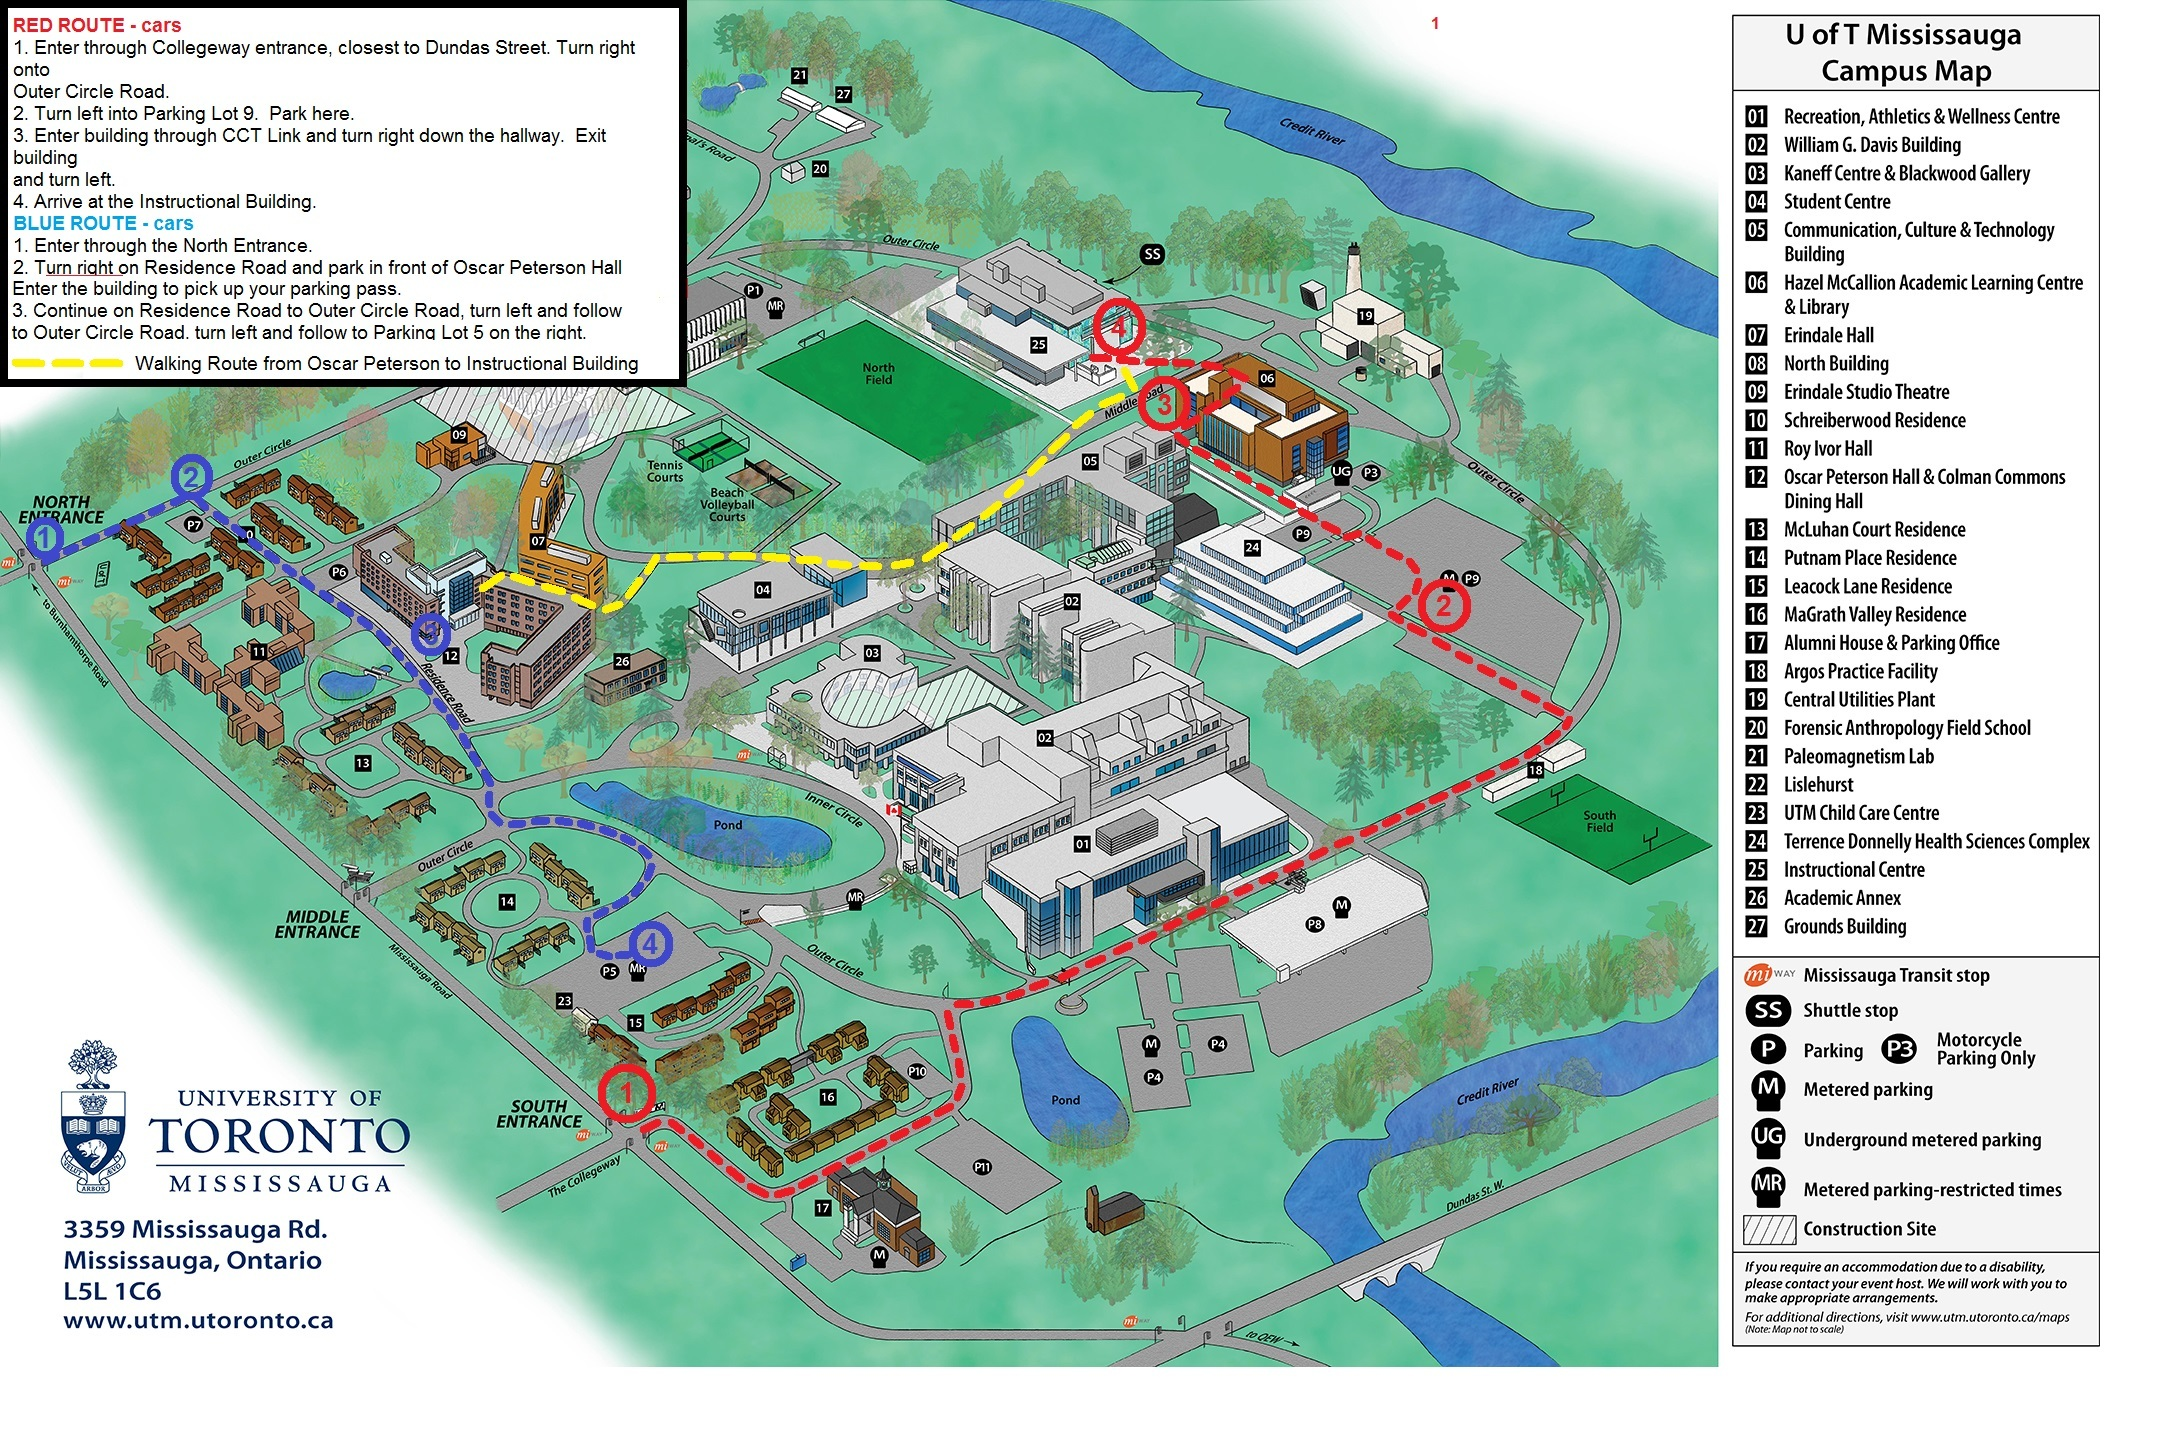 Utm campus map osee 1 osee utm campus map osee 1 gumiabroncs Image collections